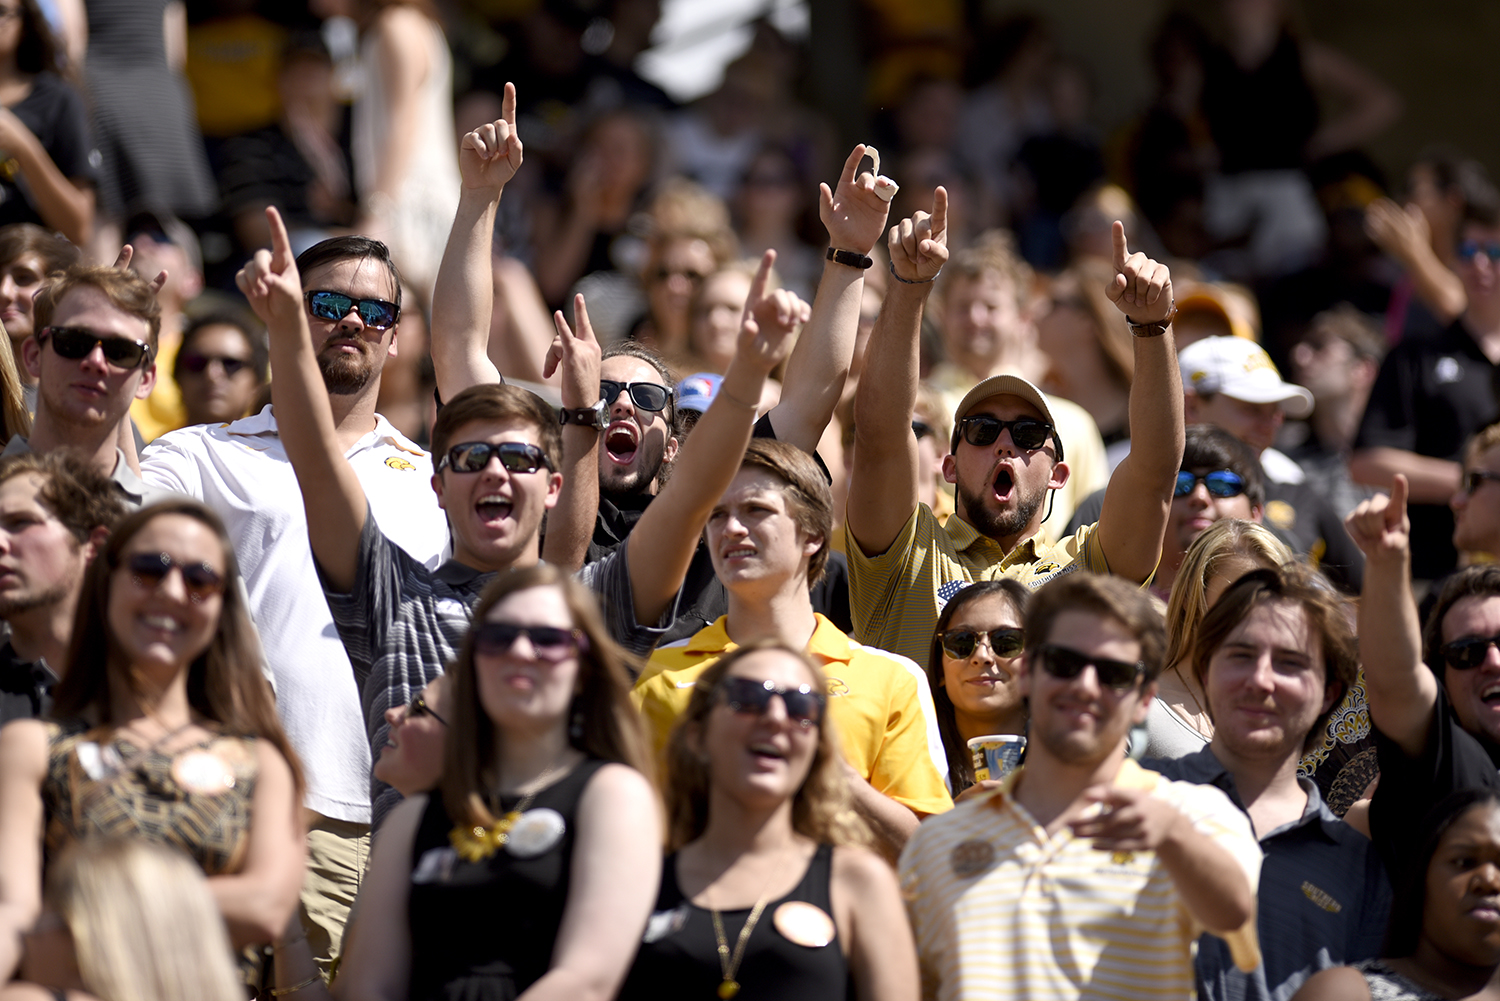 Why has Southern Miss game attendance plummeted?